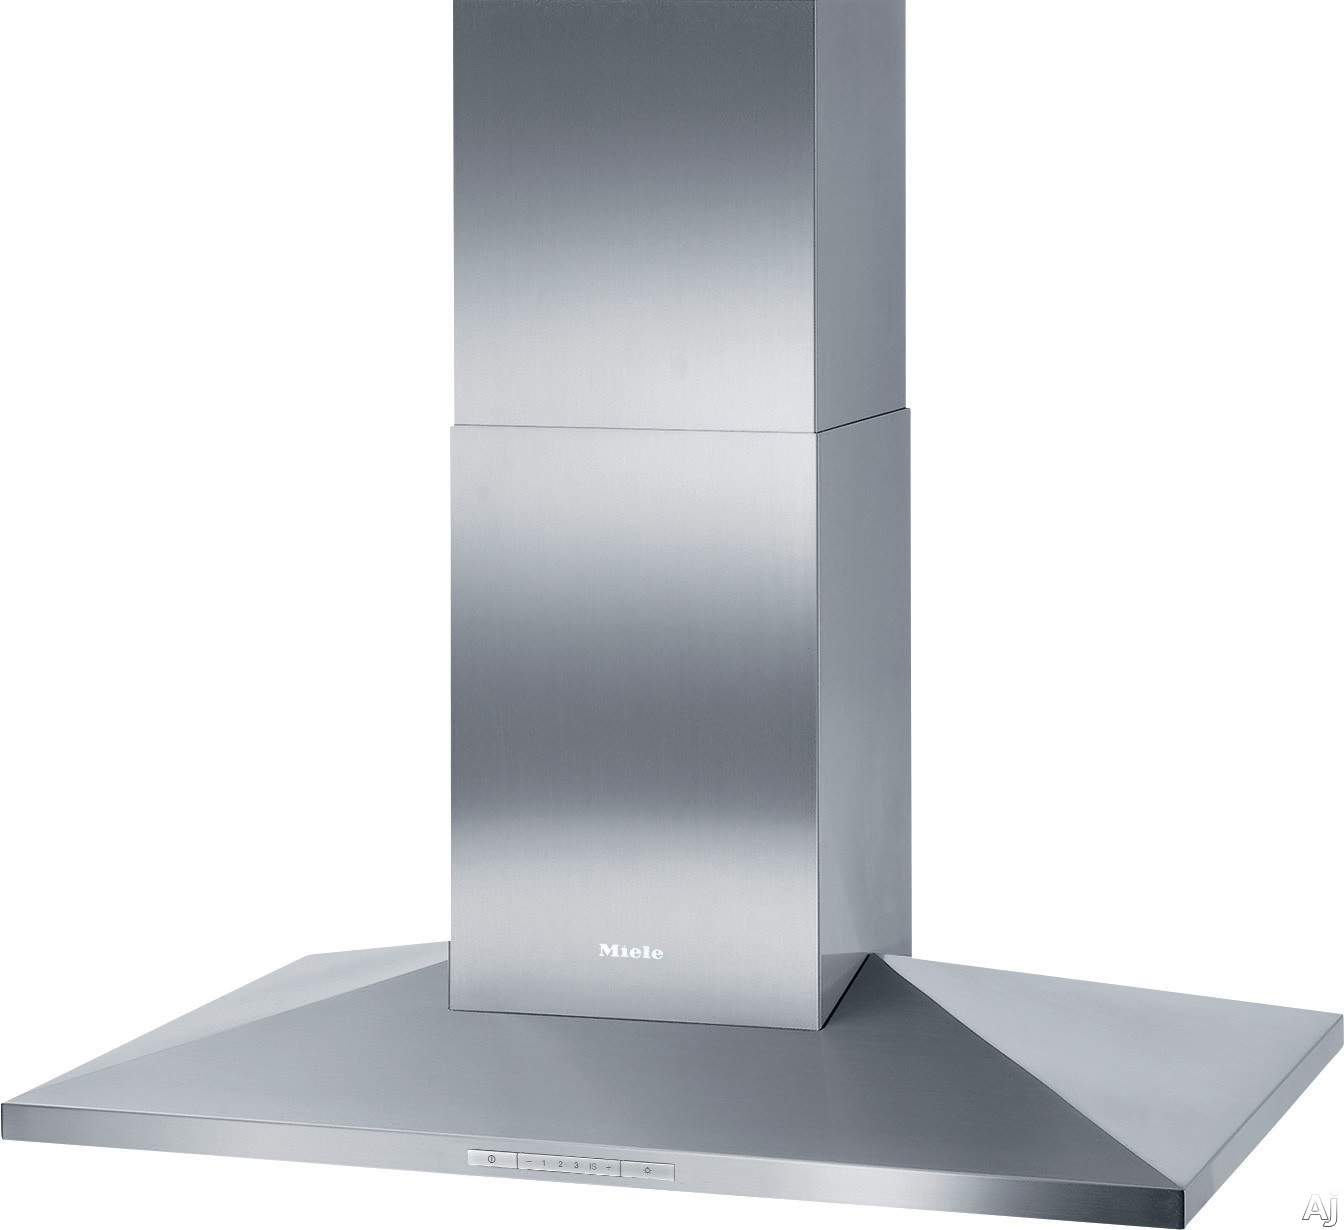 Miele DA3906 40 Inch Island Mount Chimney Hood with 625 CFM Internal Blower, 4 Fan Speeds Including Intensive, Halogen Lighting, Metal Filters and Backlit Controls DA3906